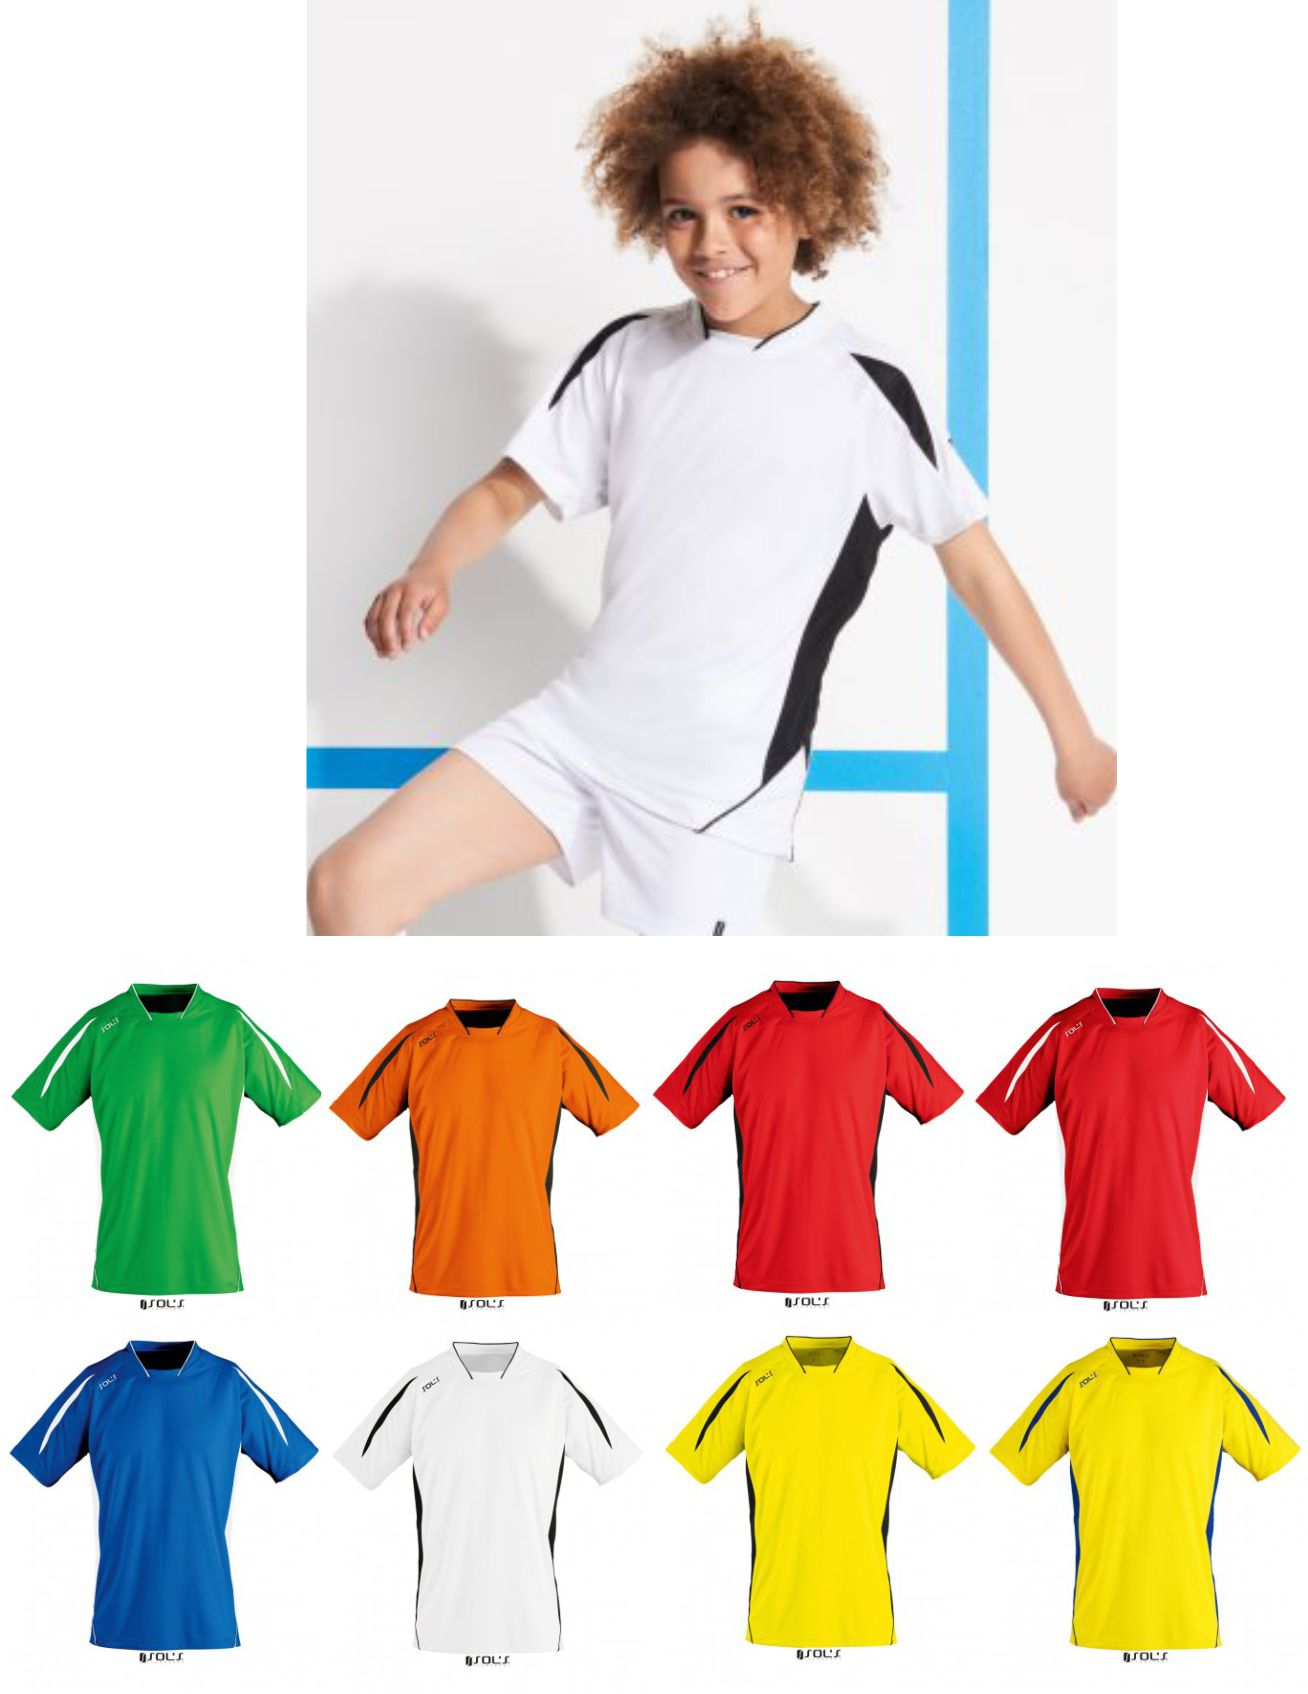 Sol's 01639 Kid's Maracana 2 Short Sleeve Shirt